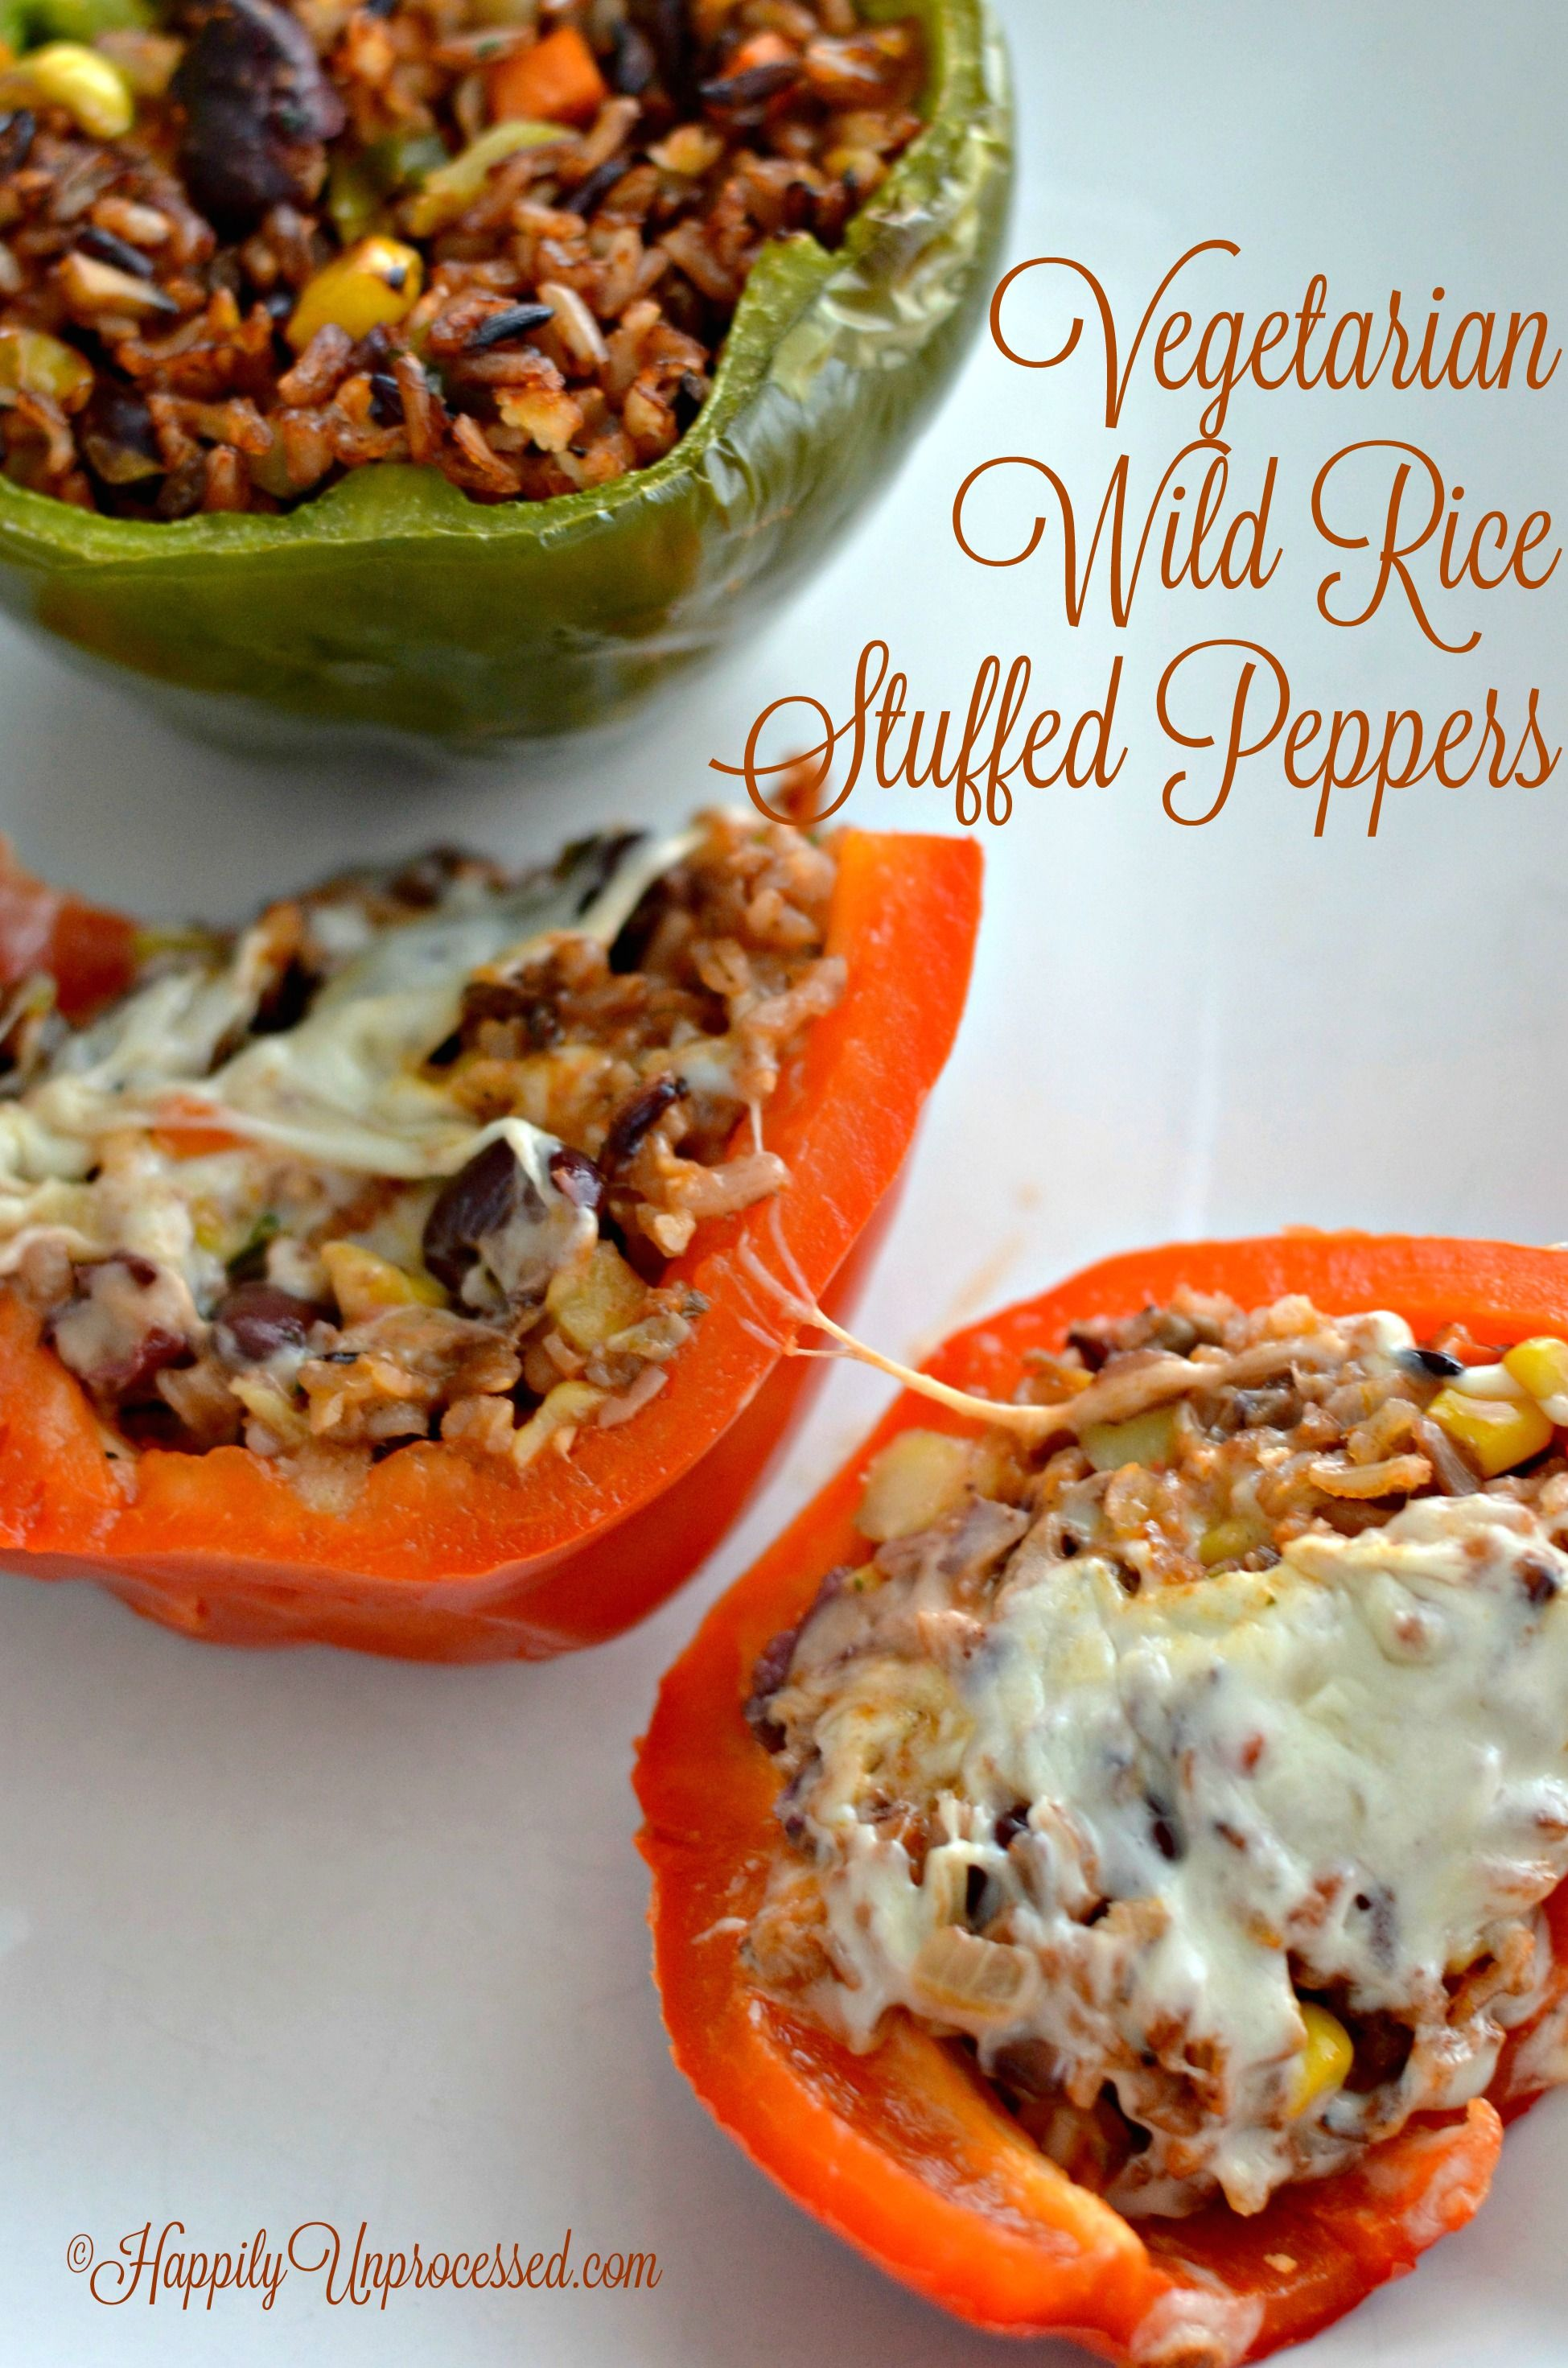 Vegetarian Stuffed Peppers Happily Unprocessed Recipe Stuffed Peppers Vegetarian Stuffed Peppers Peppers Recipes